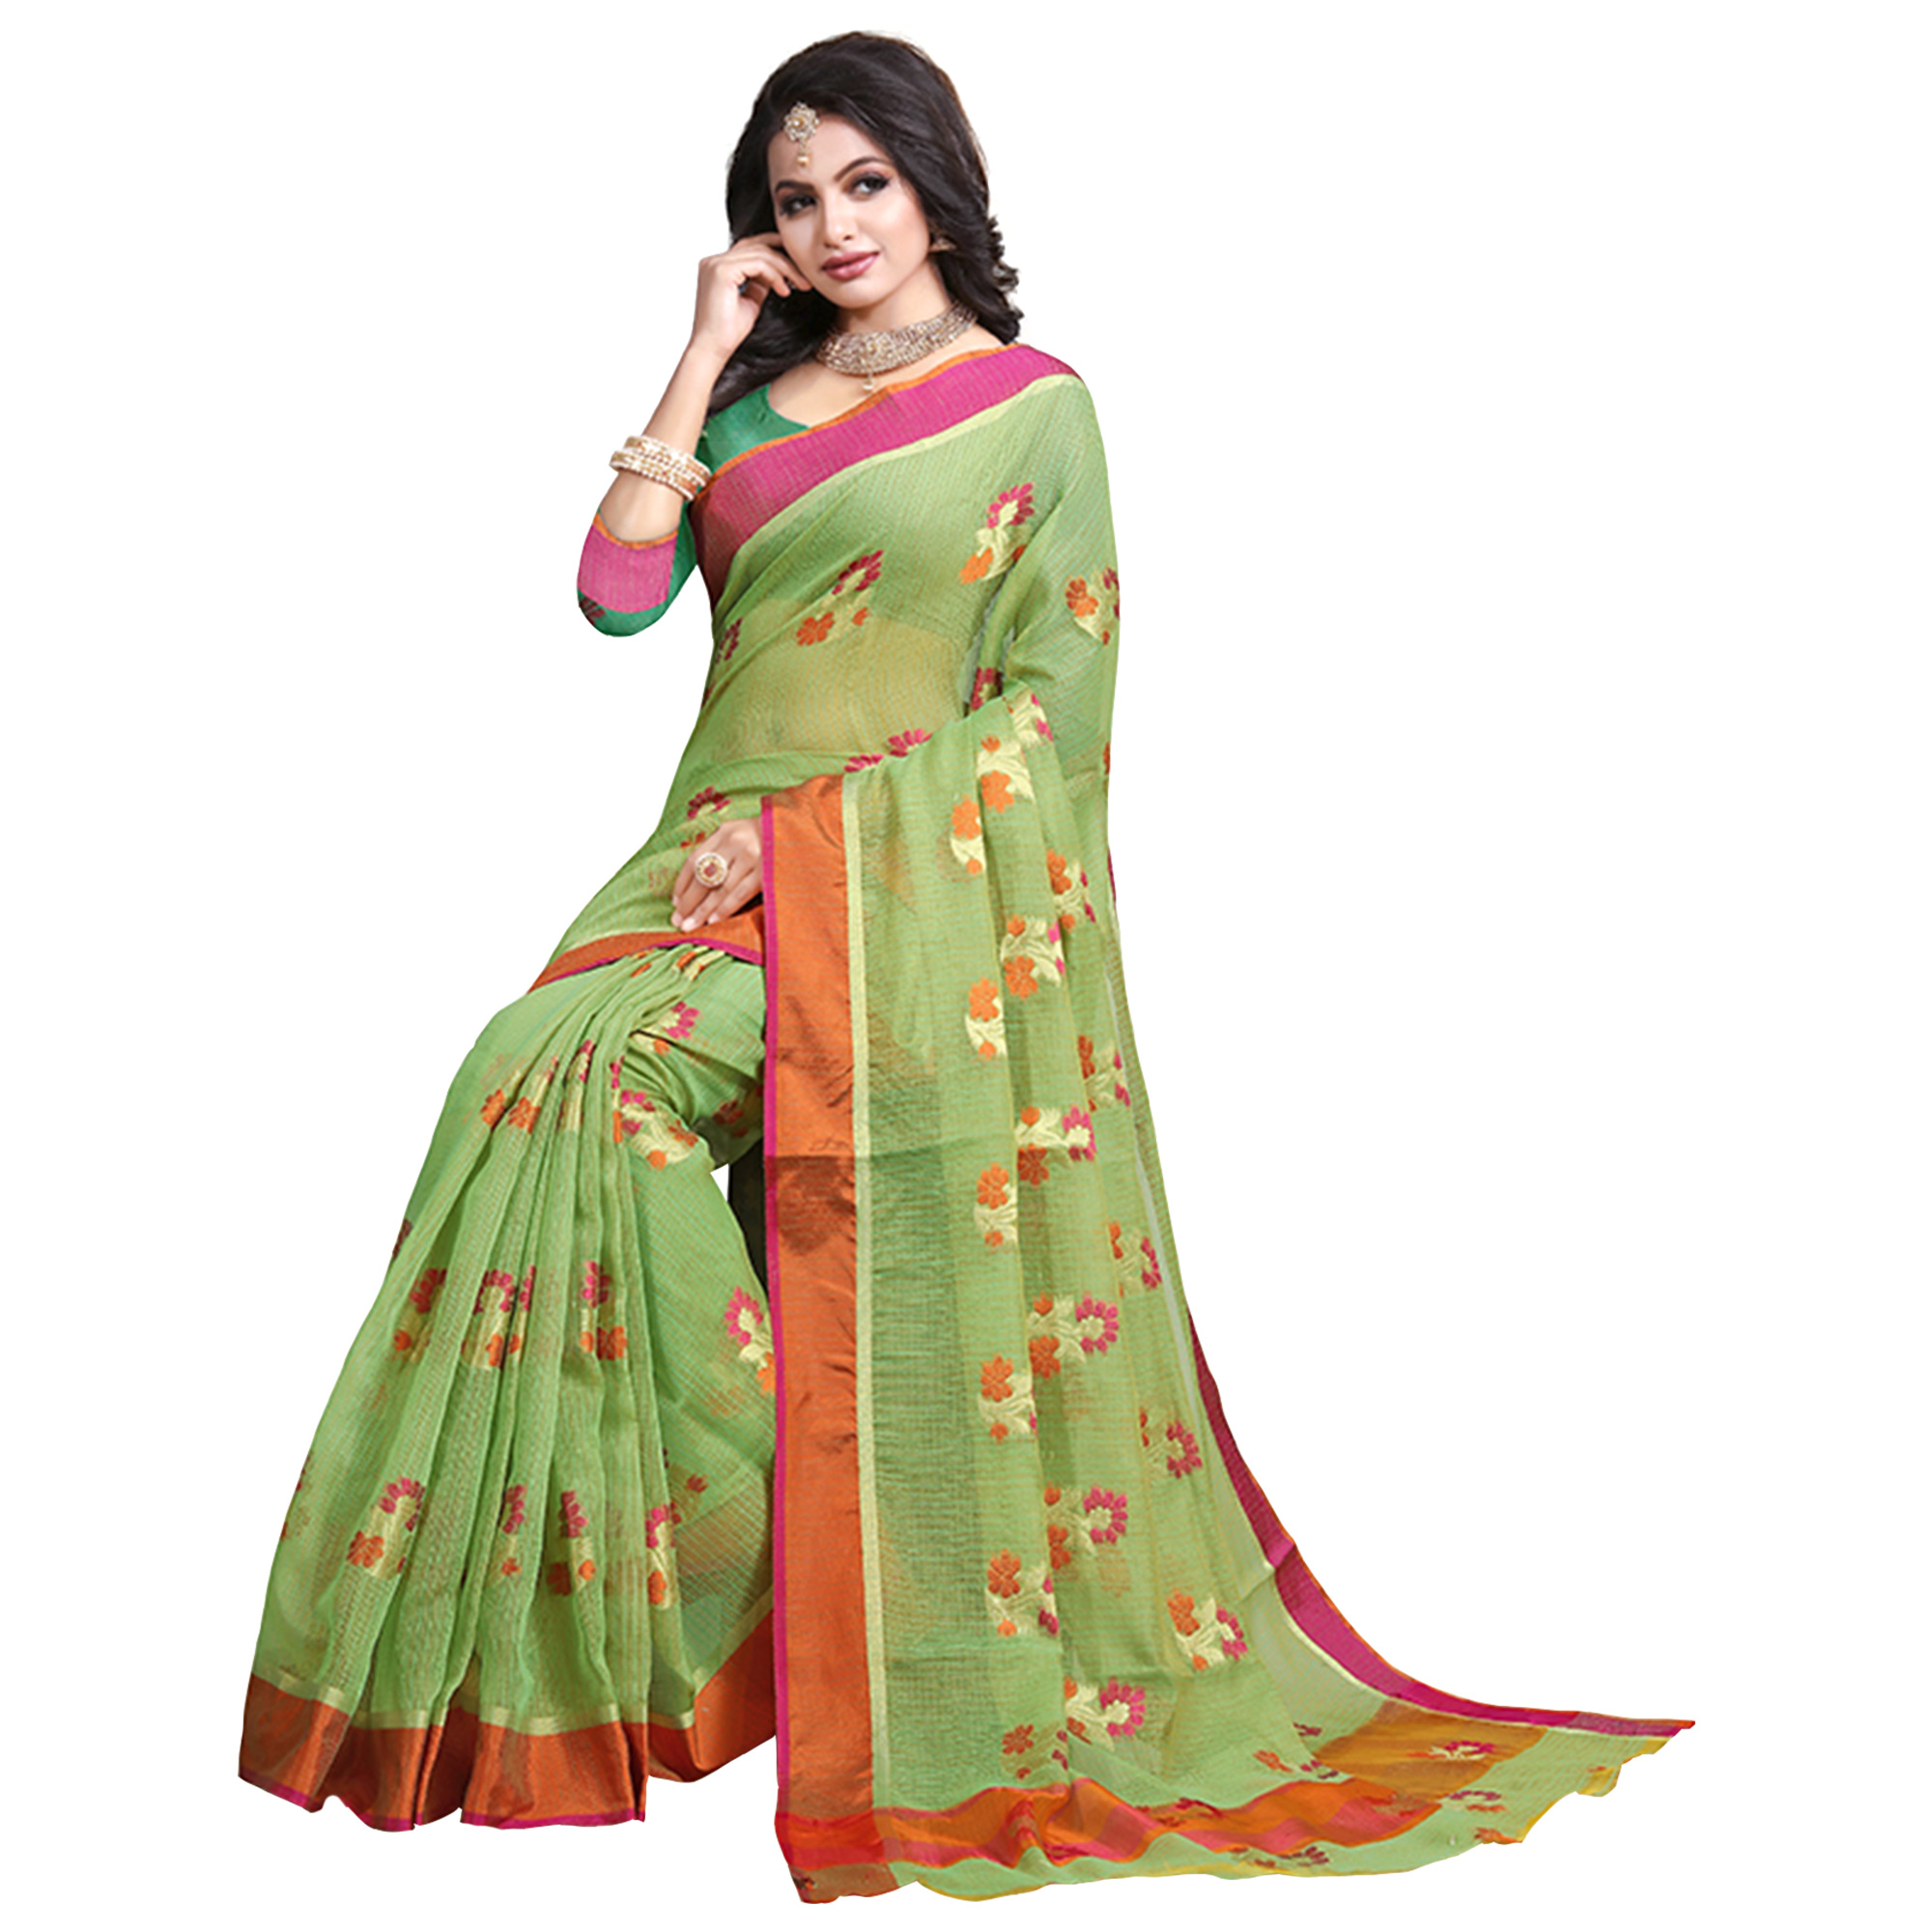 Adorning Green Colored Festive Wear Cotton Saree